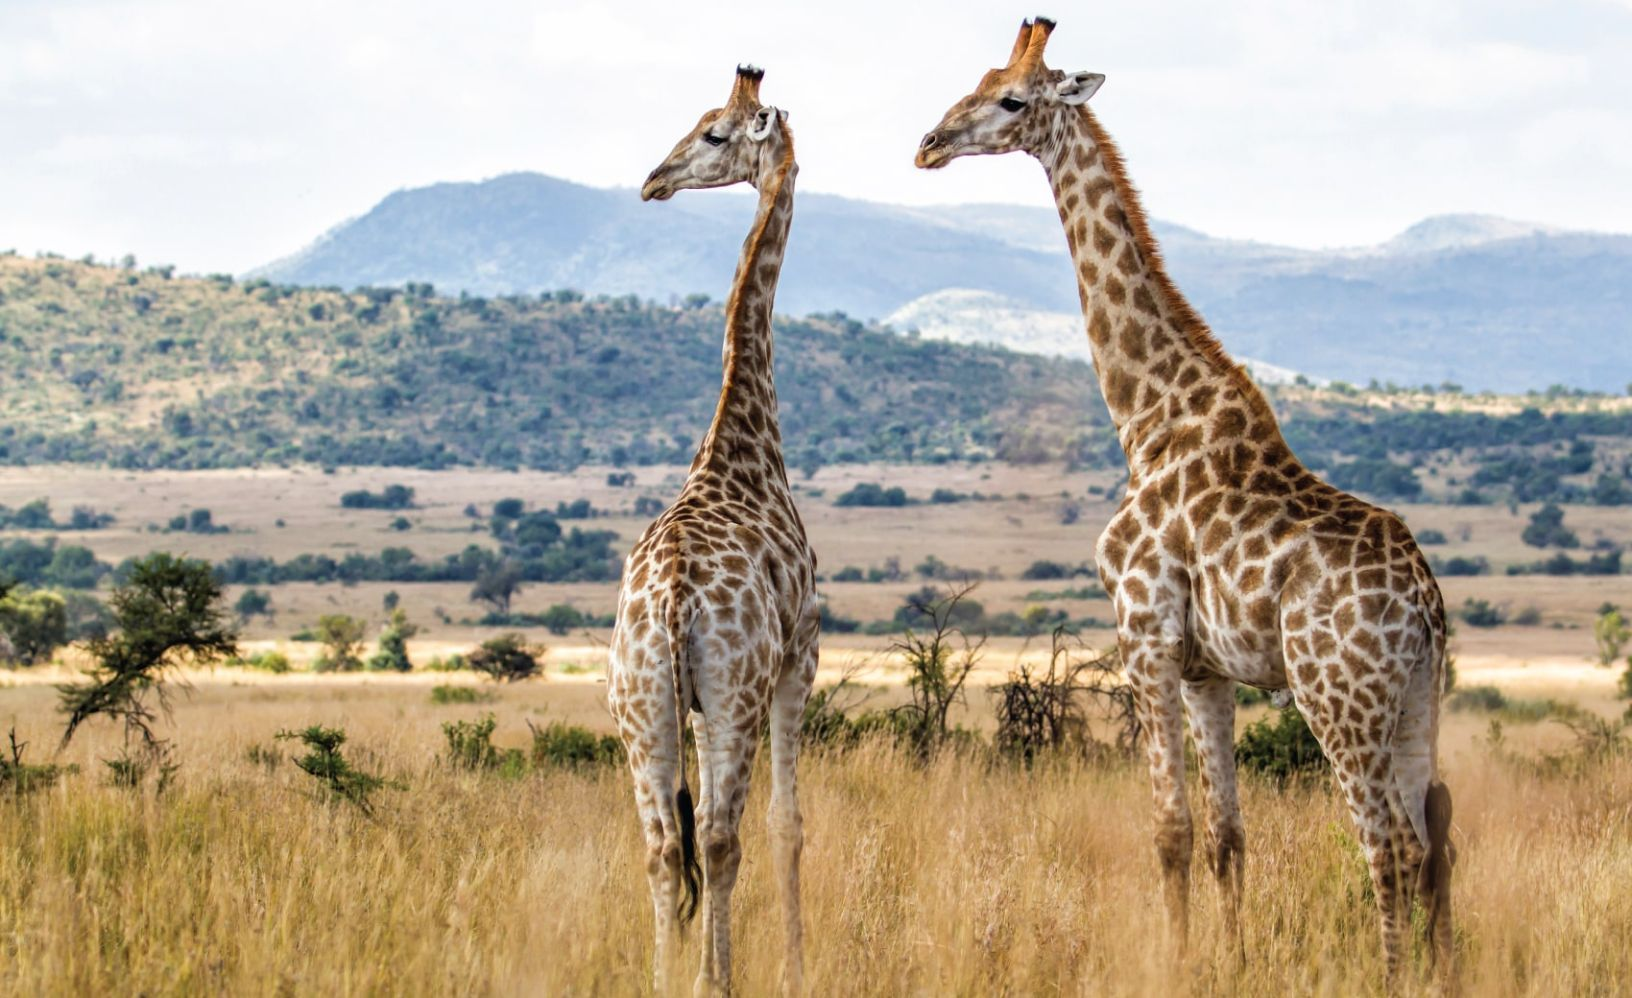 Two giraffes in Pilanesberg National Park in South Africa